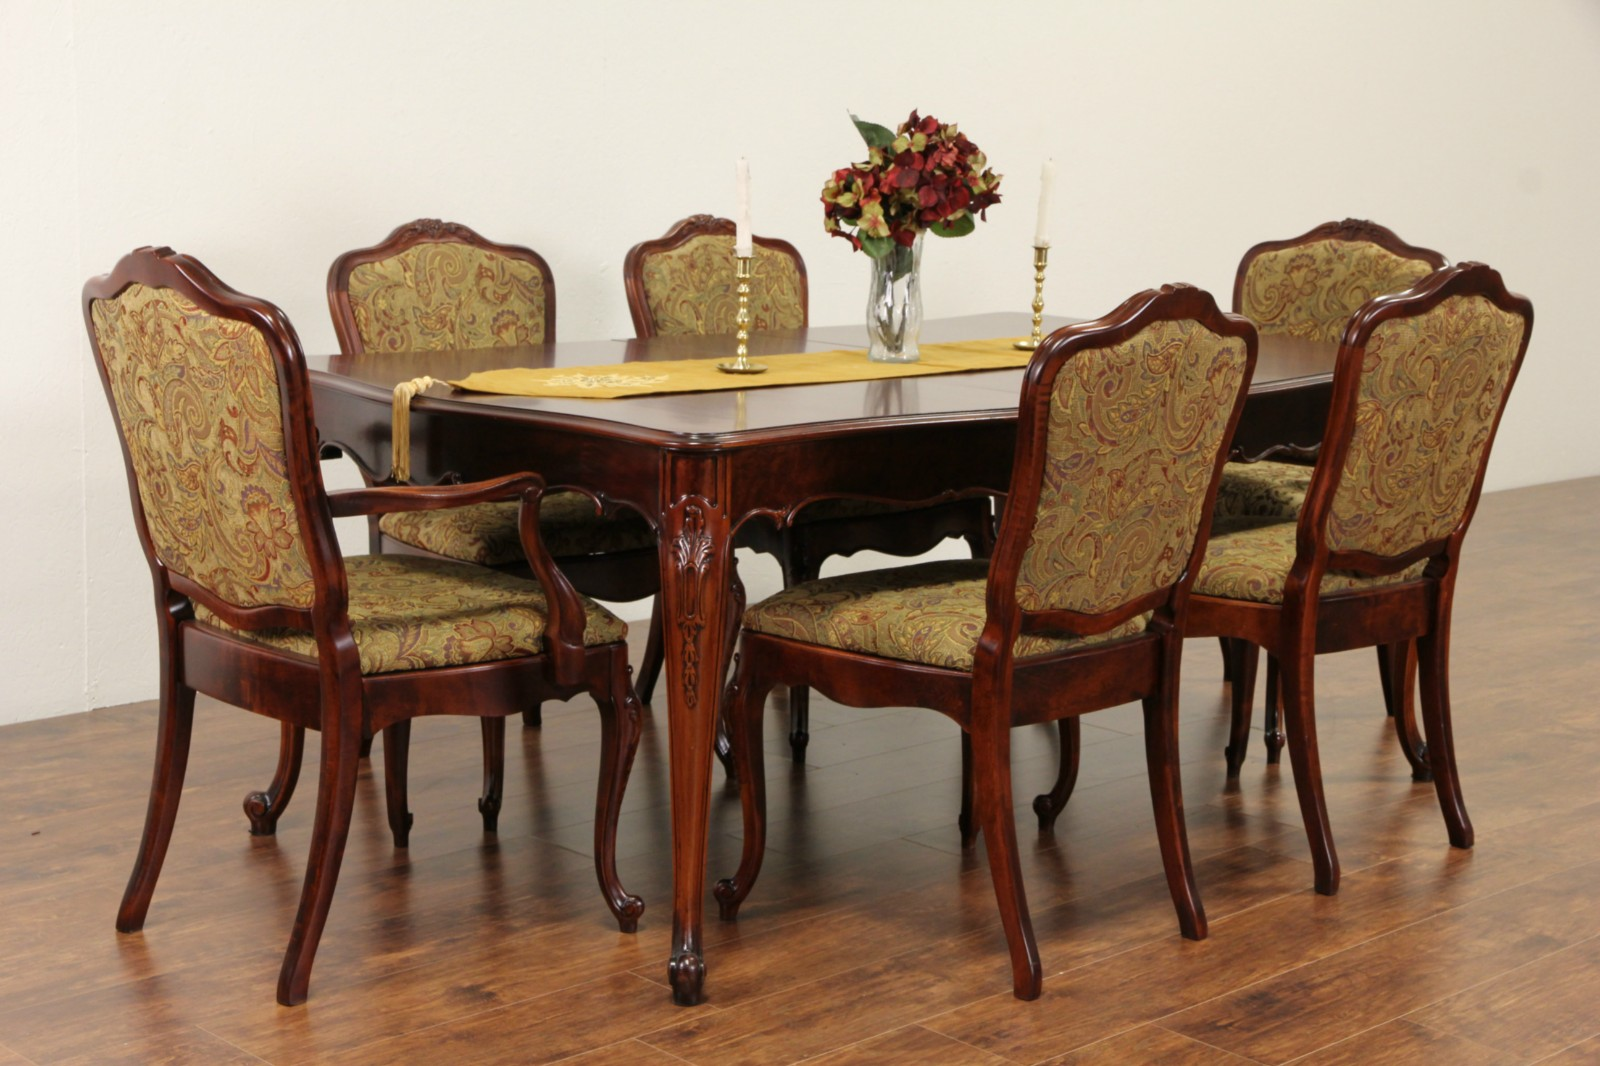 SOLD Dining Set French Style Vintage Table Leaves - Dining table with 3 leaves